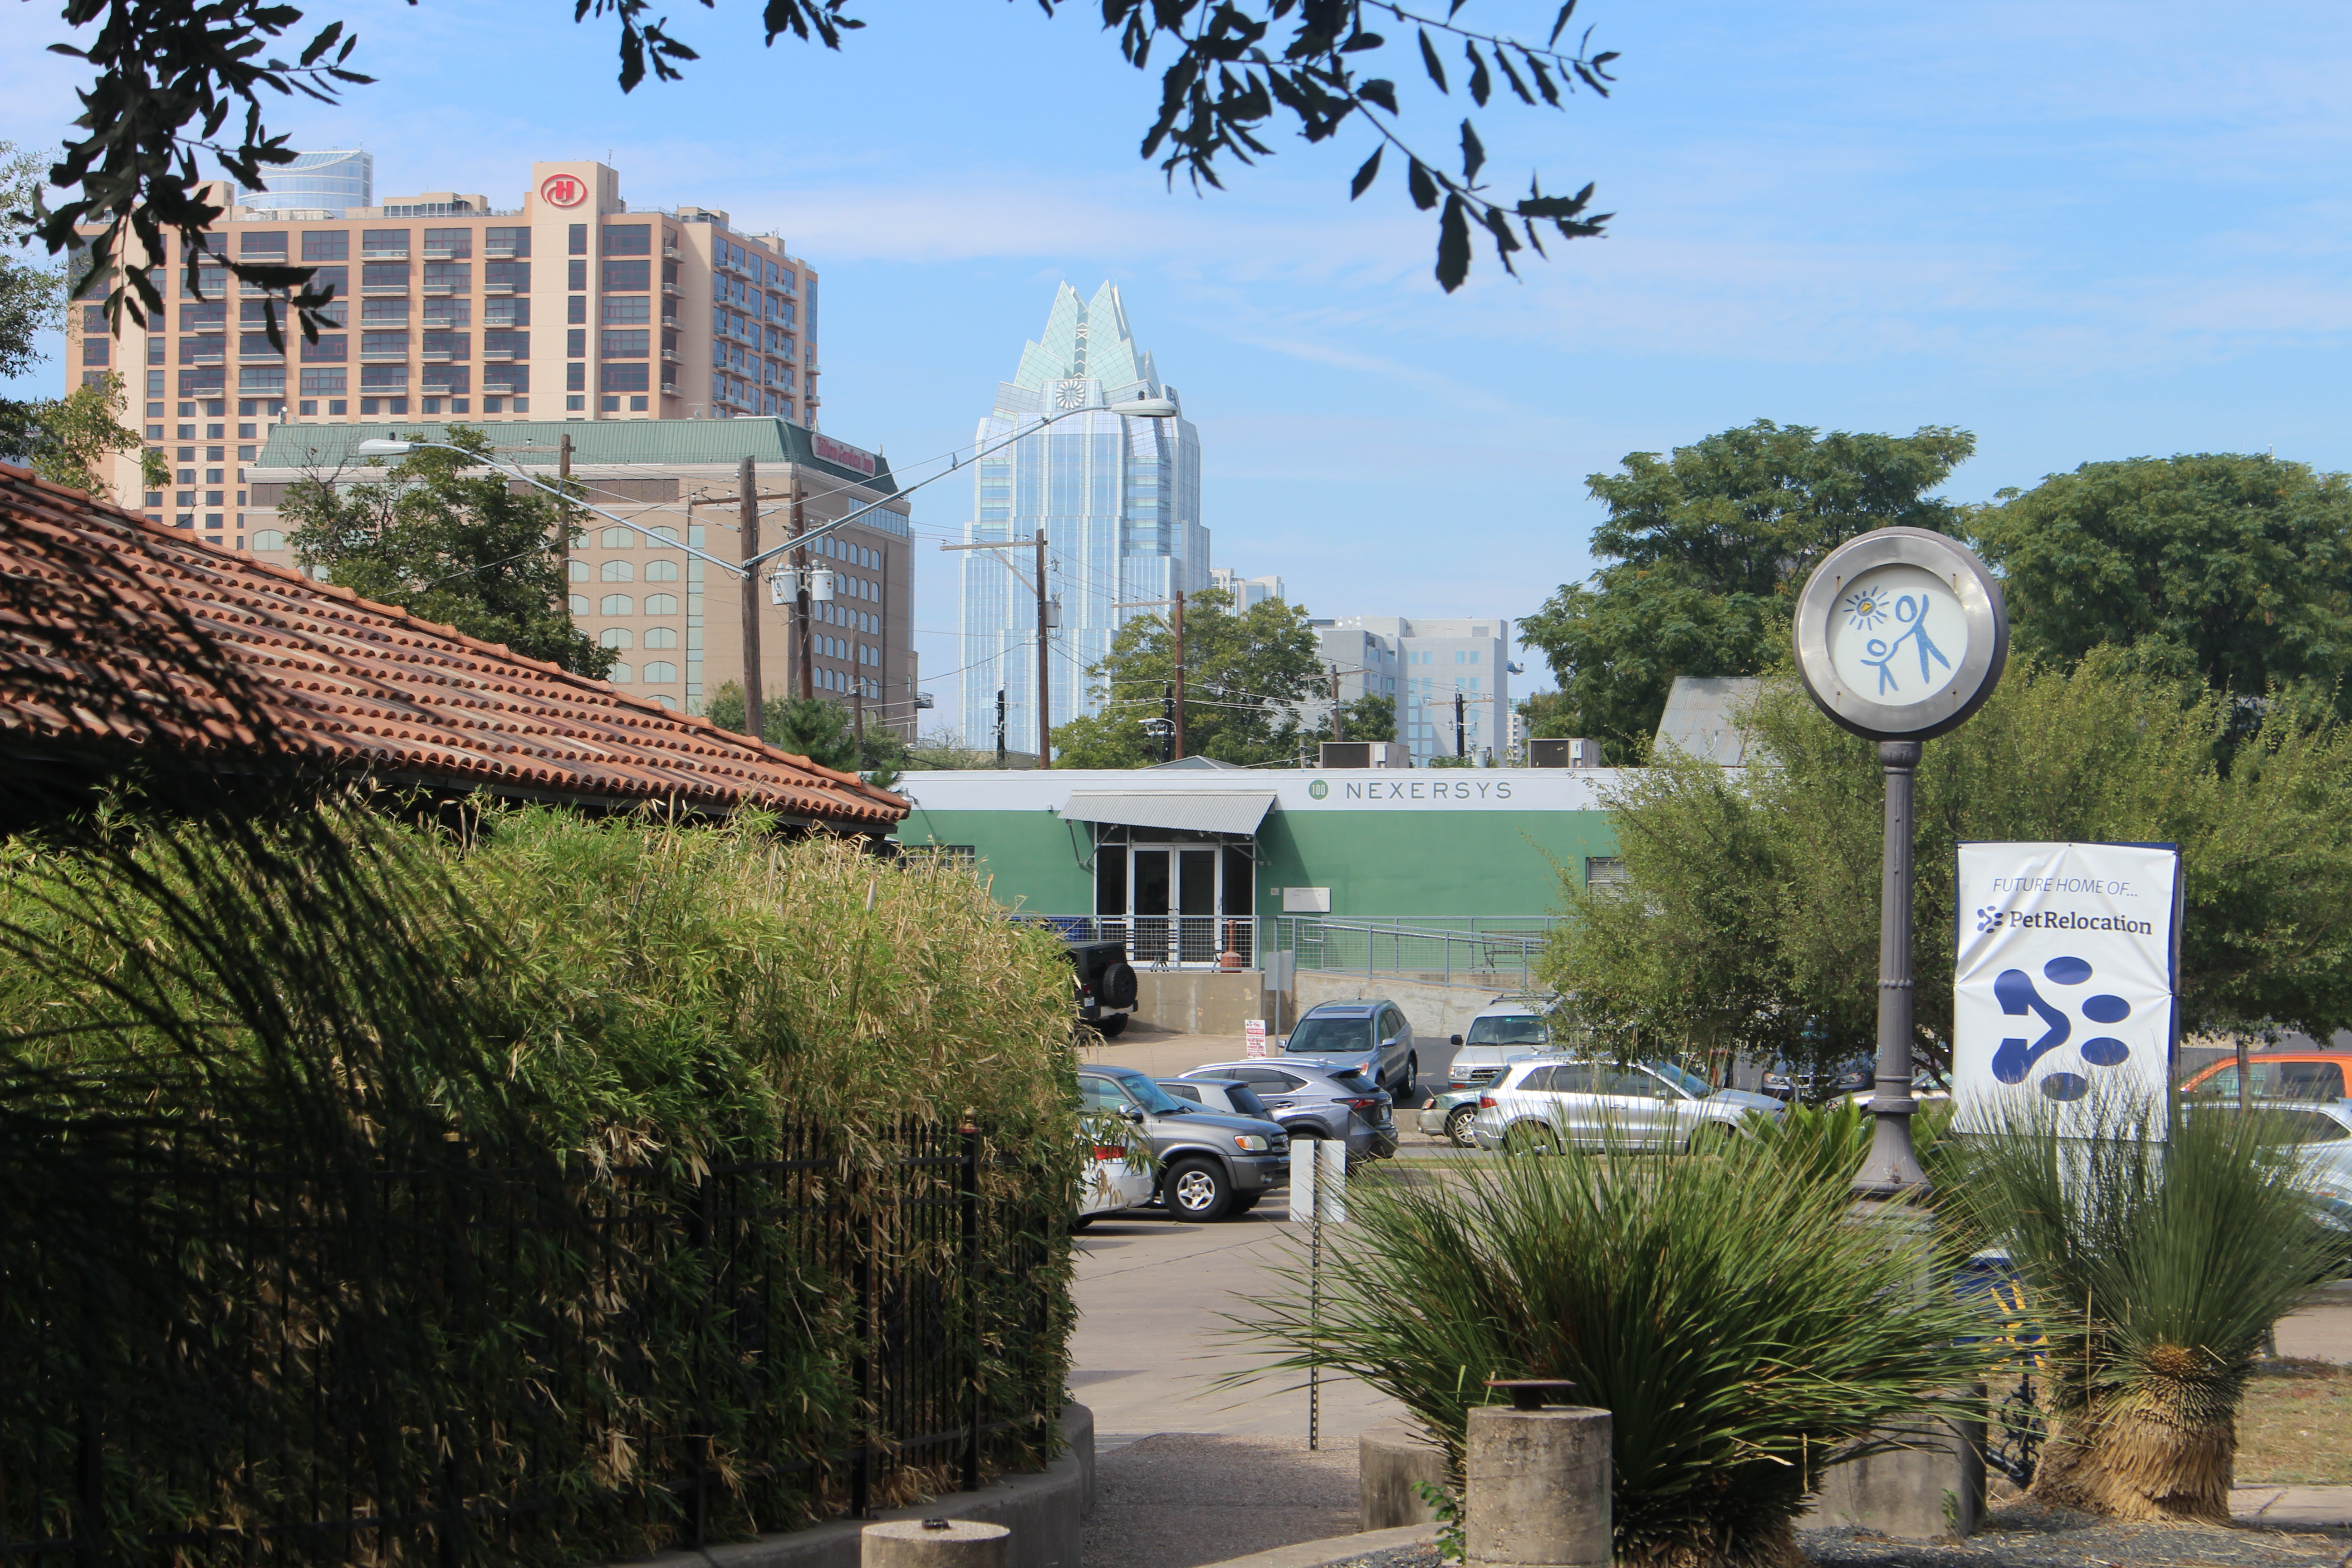 Central Austin continues to grow at a rapid pace